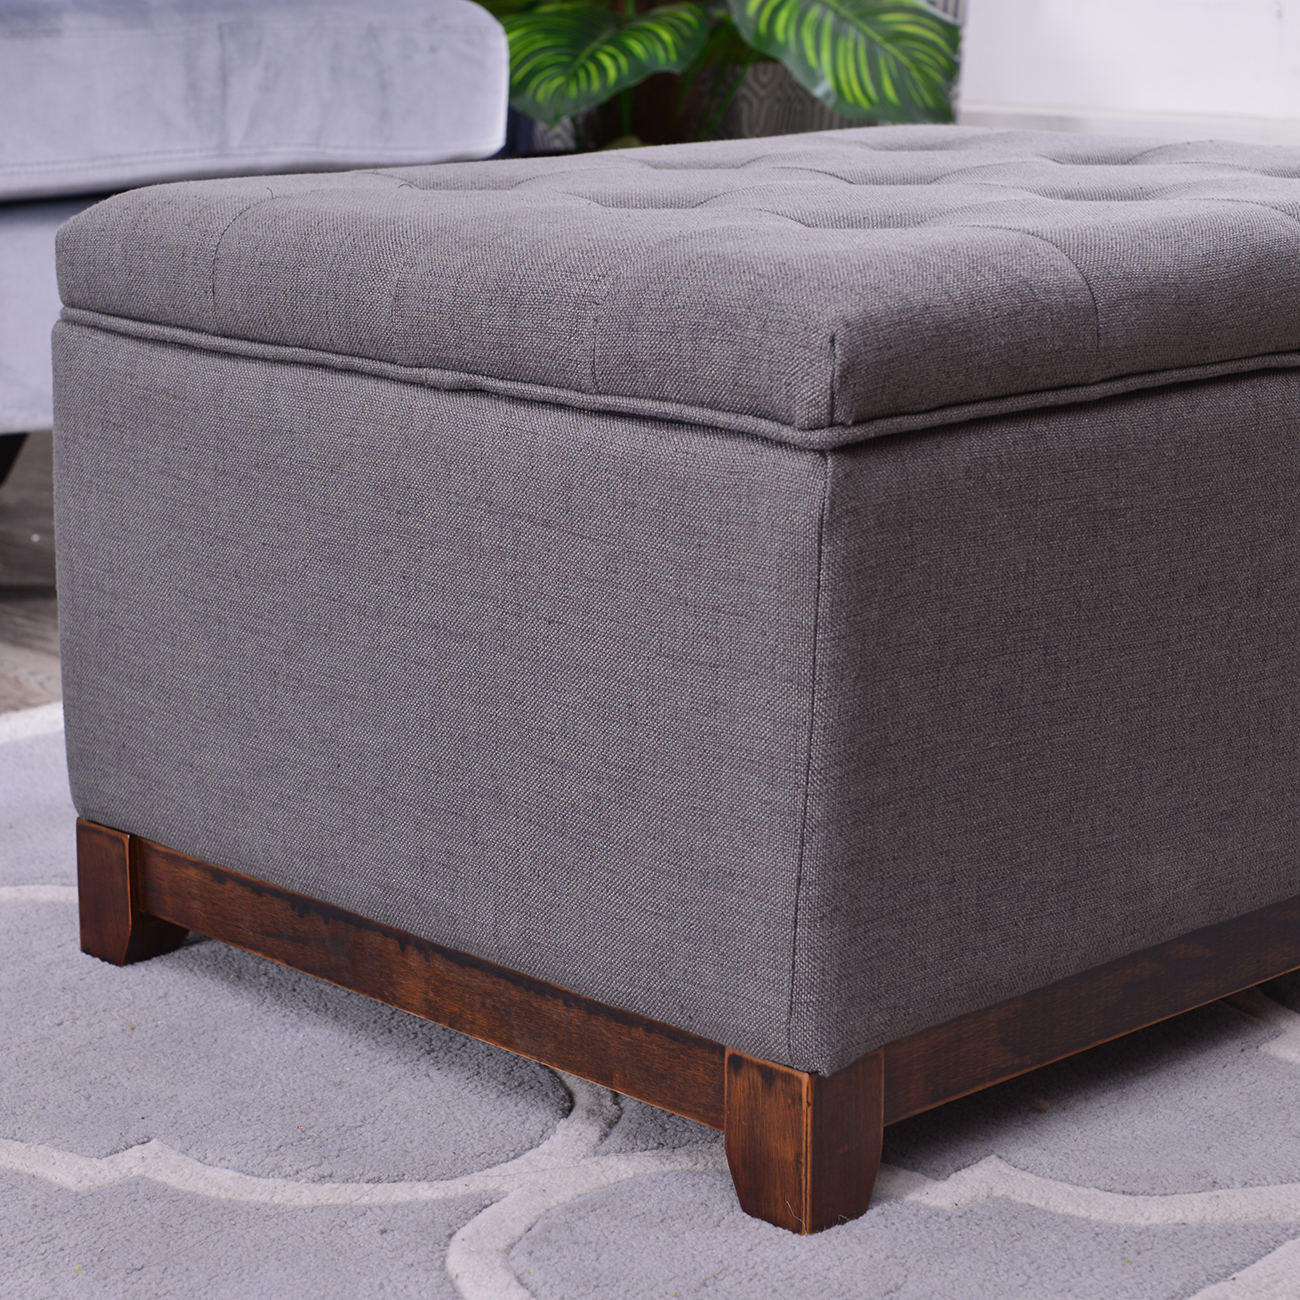 large storage ottoman stool bench seat linen tufted brown gray and navy ebay. Black Bedroom Furniture Sets. Home Design Ideas